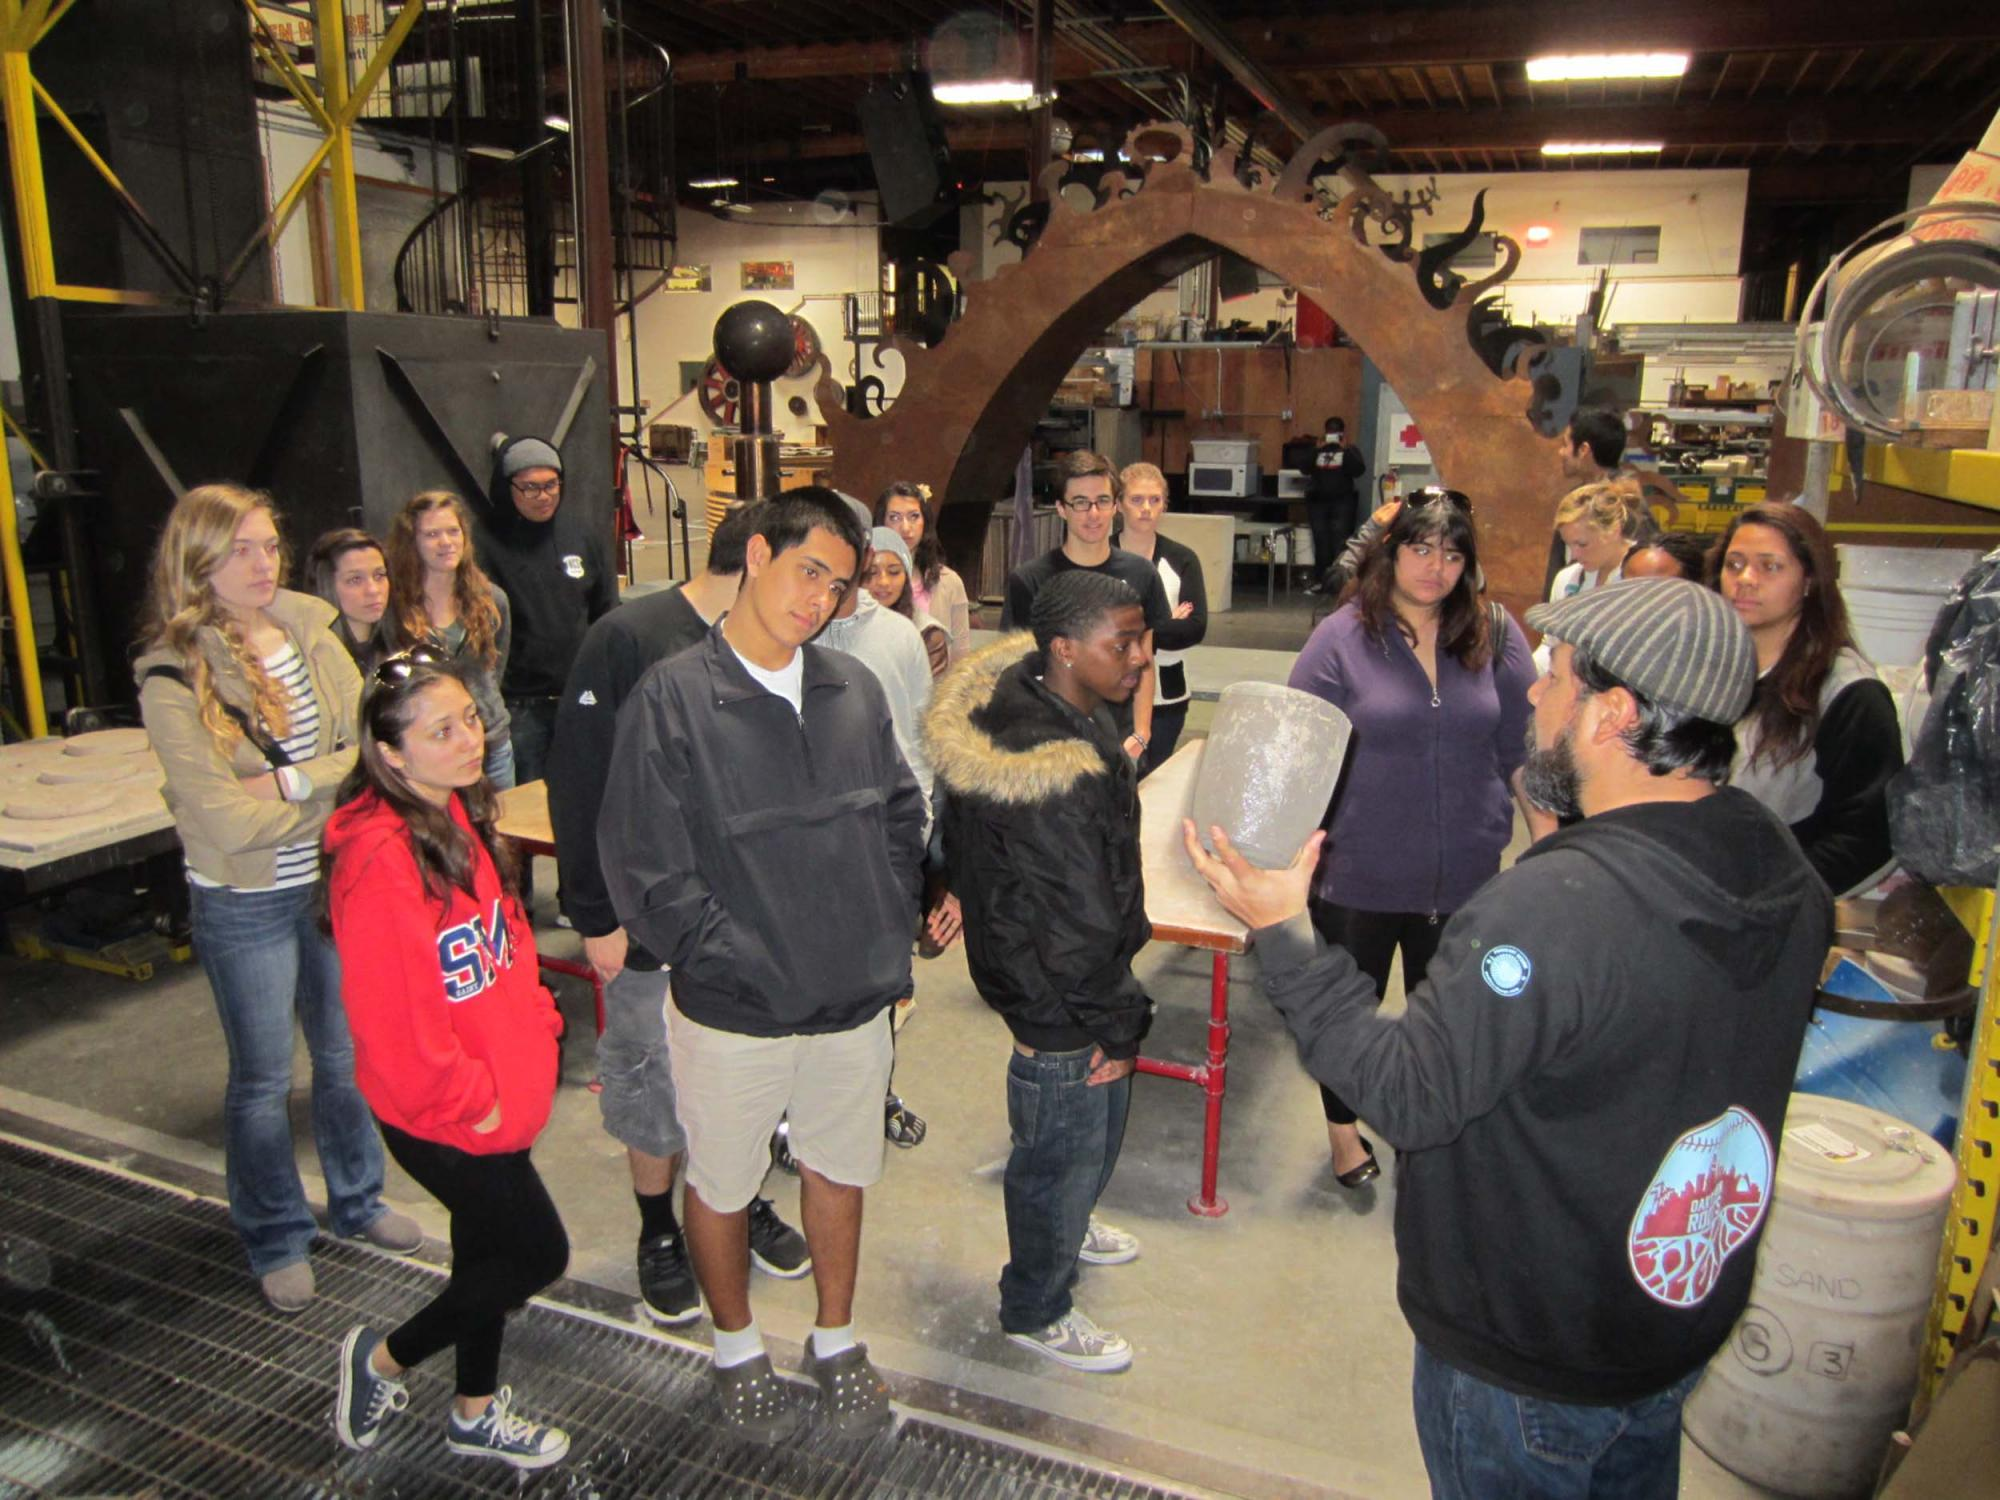 Students tour The Crucible industrial arts and education center in West Oakland.